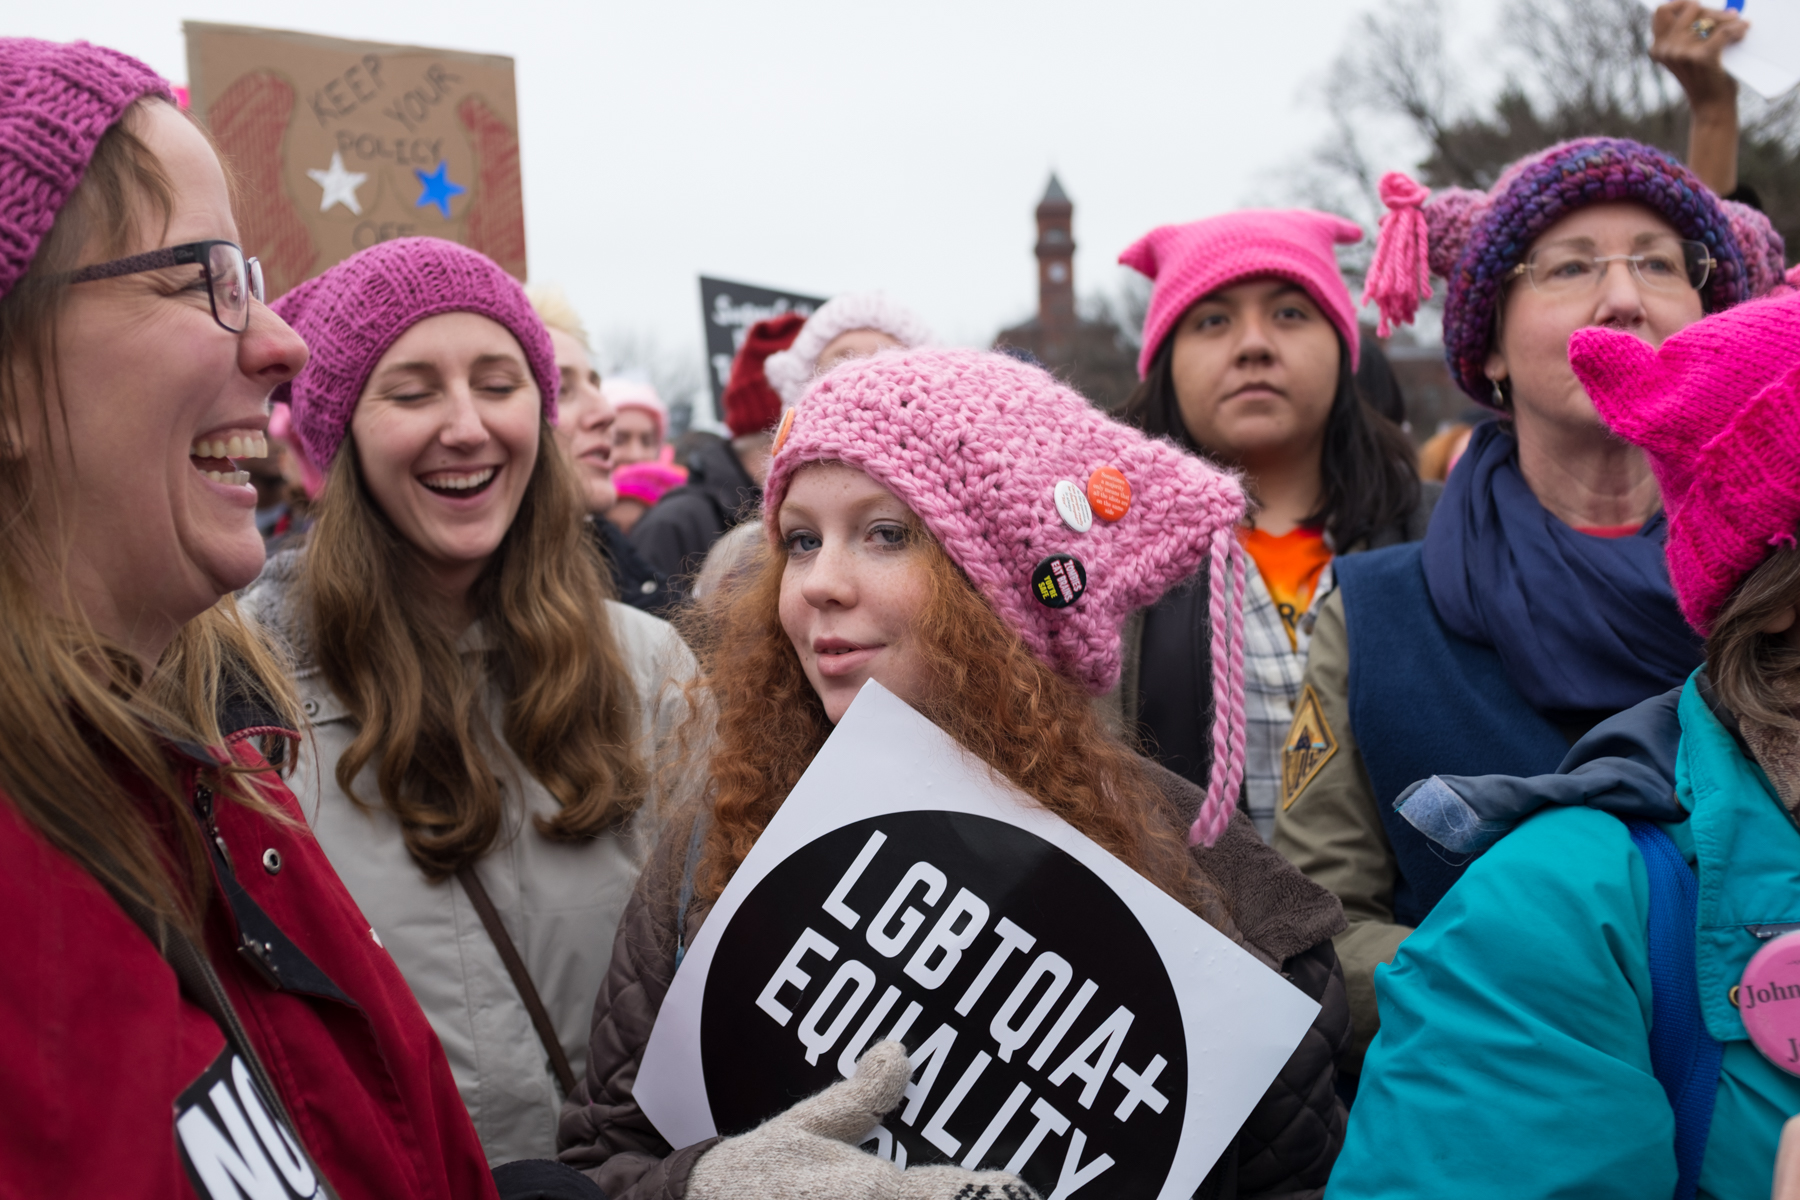 Schuetz_WomensMarchonWashington-16.jpg